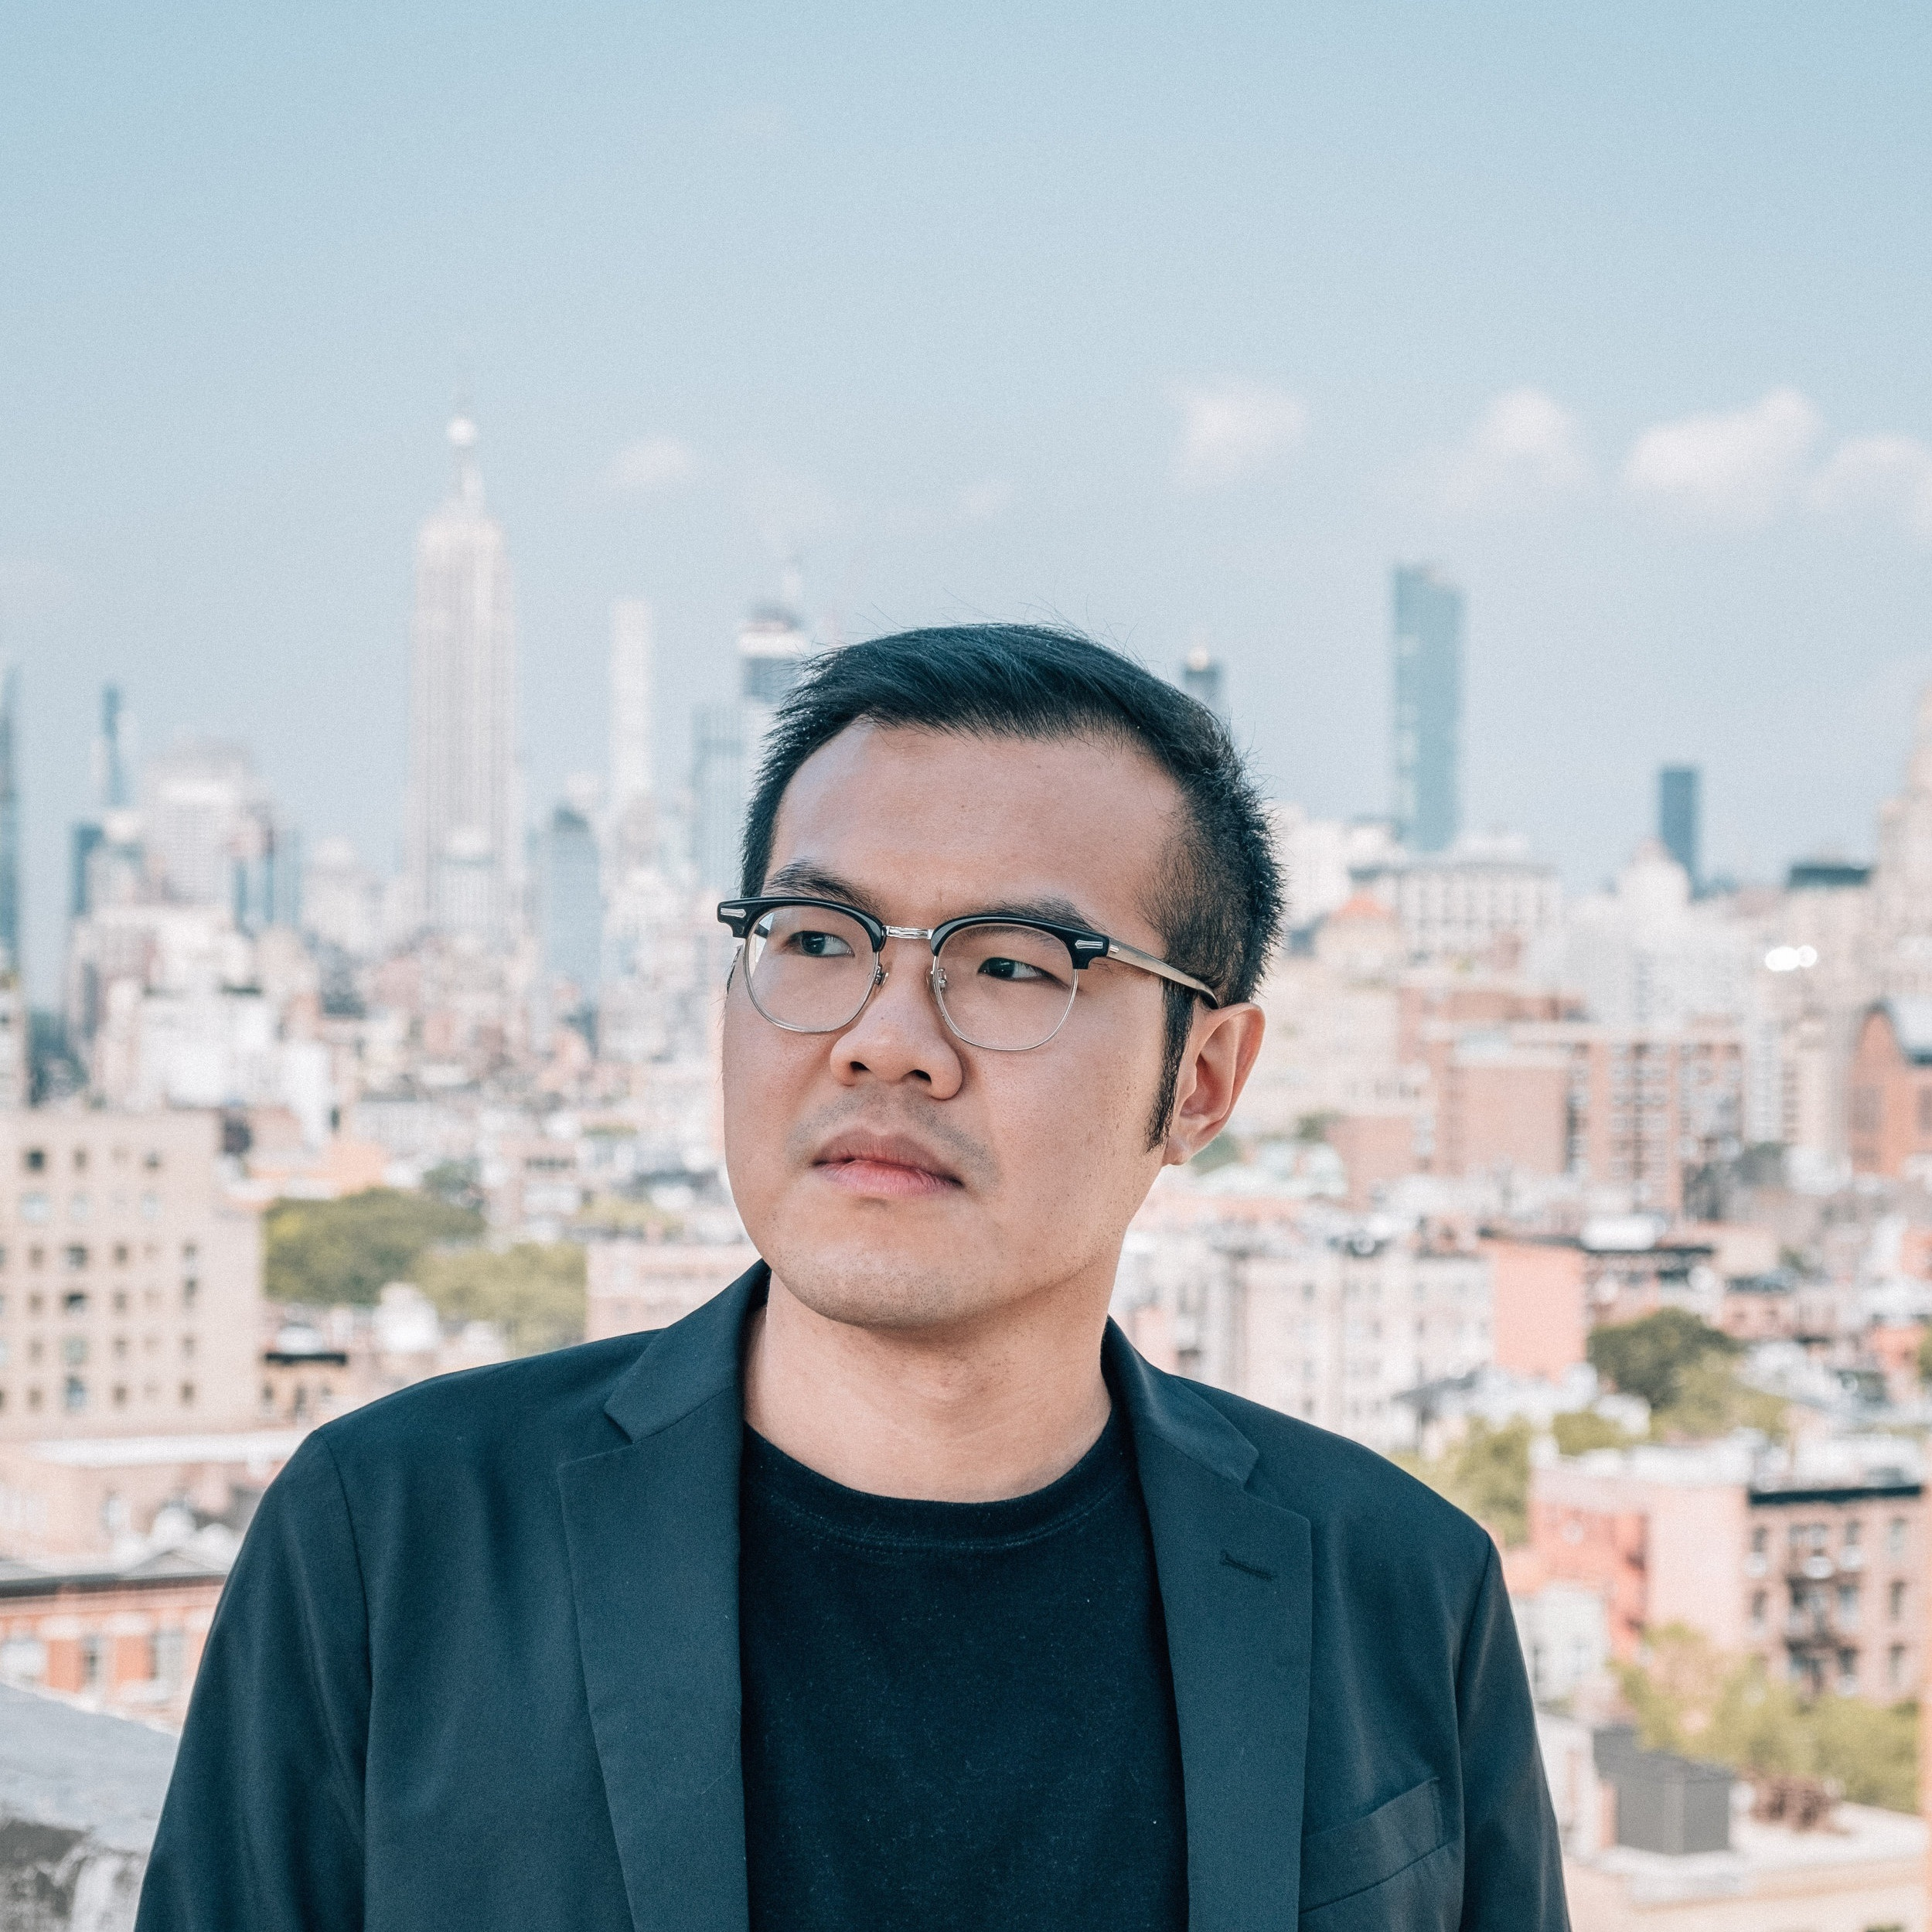 Chih Kai Chan - Architectural Designer, LEED Green Associatekchan@inc.nycKai Chan received his Master's degree in Architecture at the University of Pennsylvania in 2017. He is an Architectural Designer in INC. Before joining the INC team, he has worked internationally, including in Taipei, Stuttgart in Germany, and New York with, projects ranging from small-scale residential renovation to mid-scale commercial spaces. Kai's passion in architecture is partially based on the his taste in music, and he is deeply fascinated by the idea of sampling in different contexts, like music, architecture and fashion. In his leisure time he likes to go to vintage markets, live concerts, or just simply skateboarding and chilling with friends.